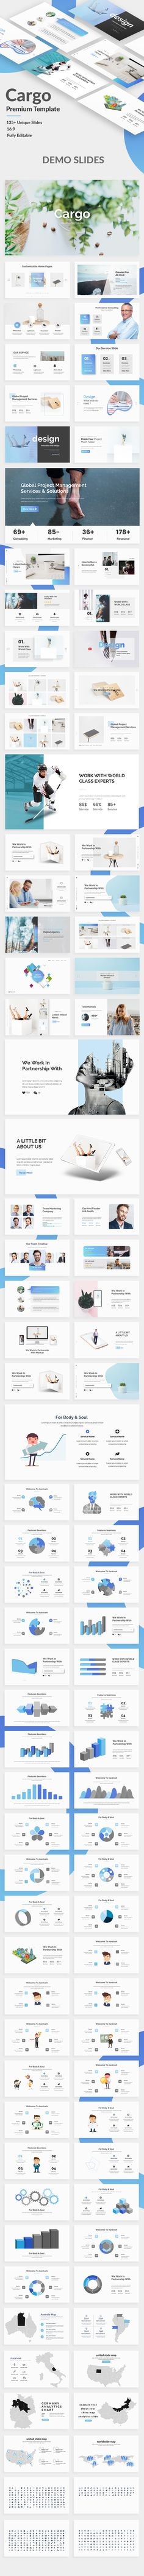 Cargo Creative Google Slide Template - Google Slides Presentation Templates